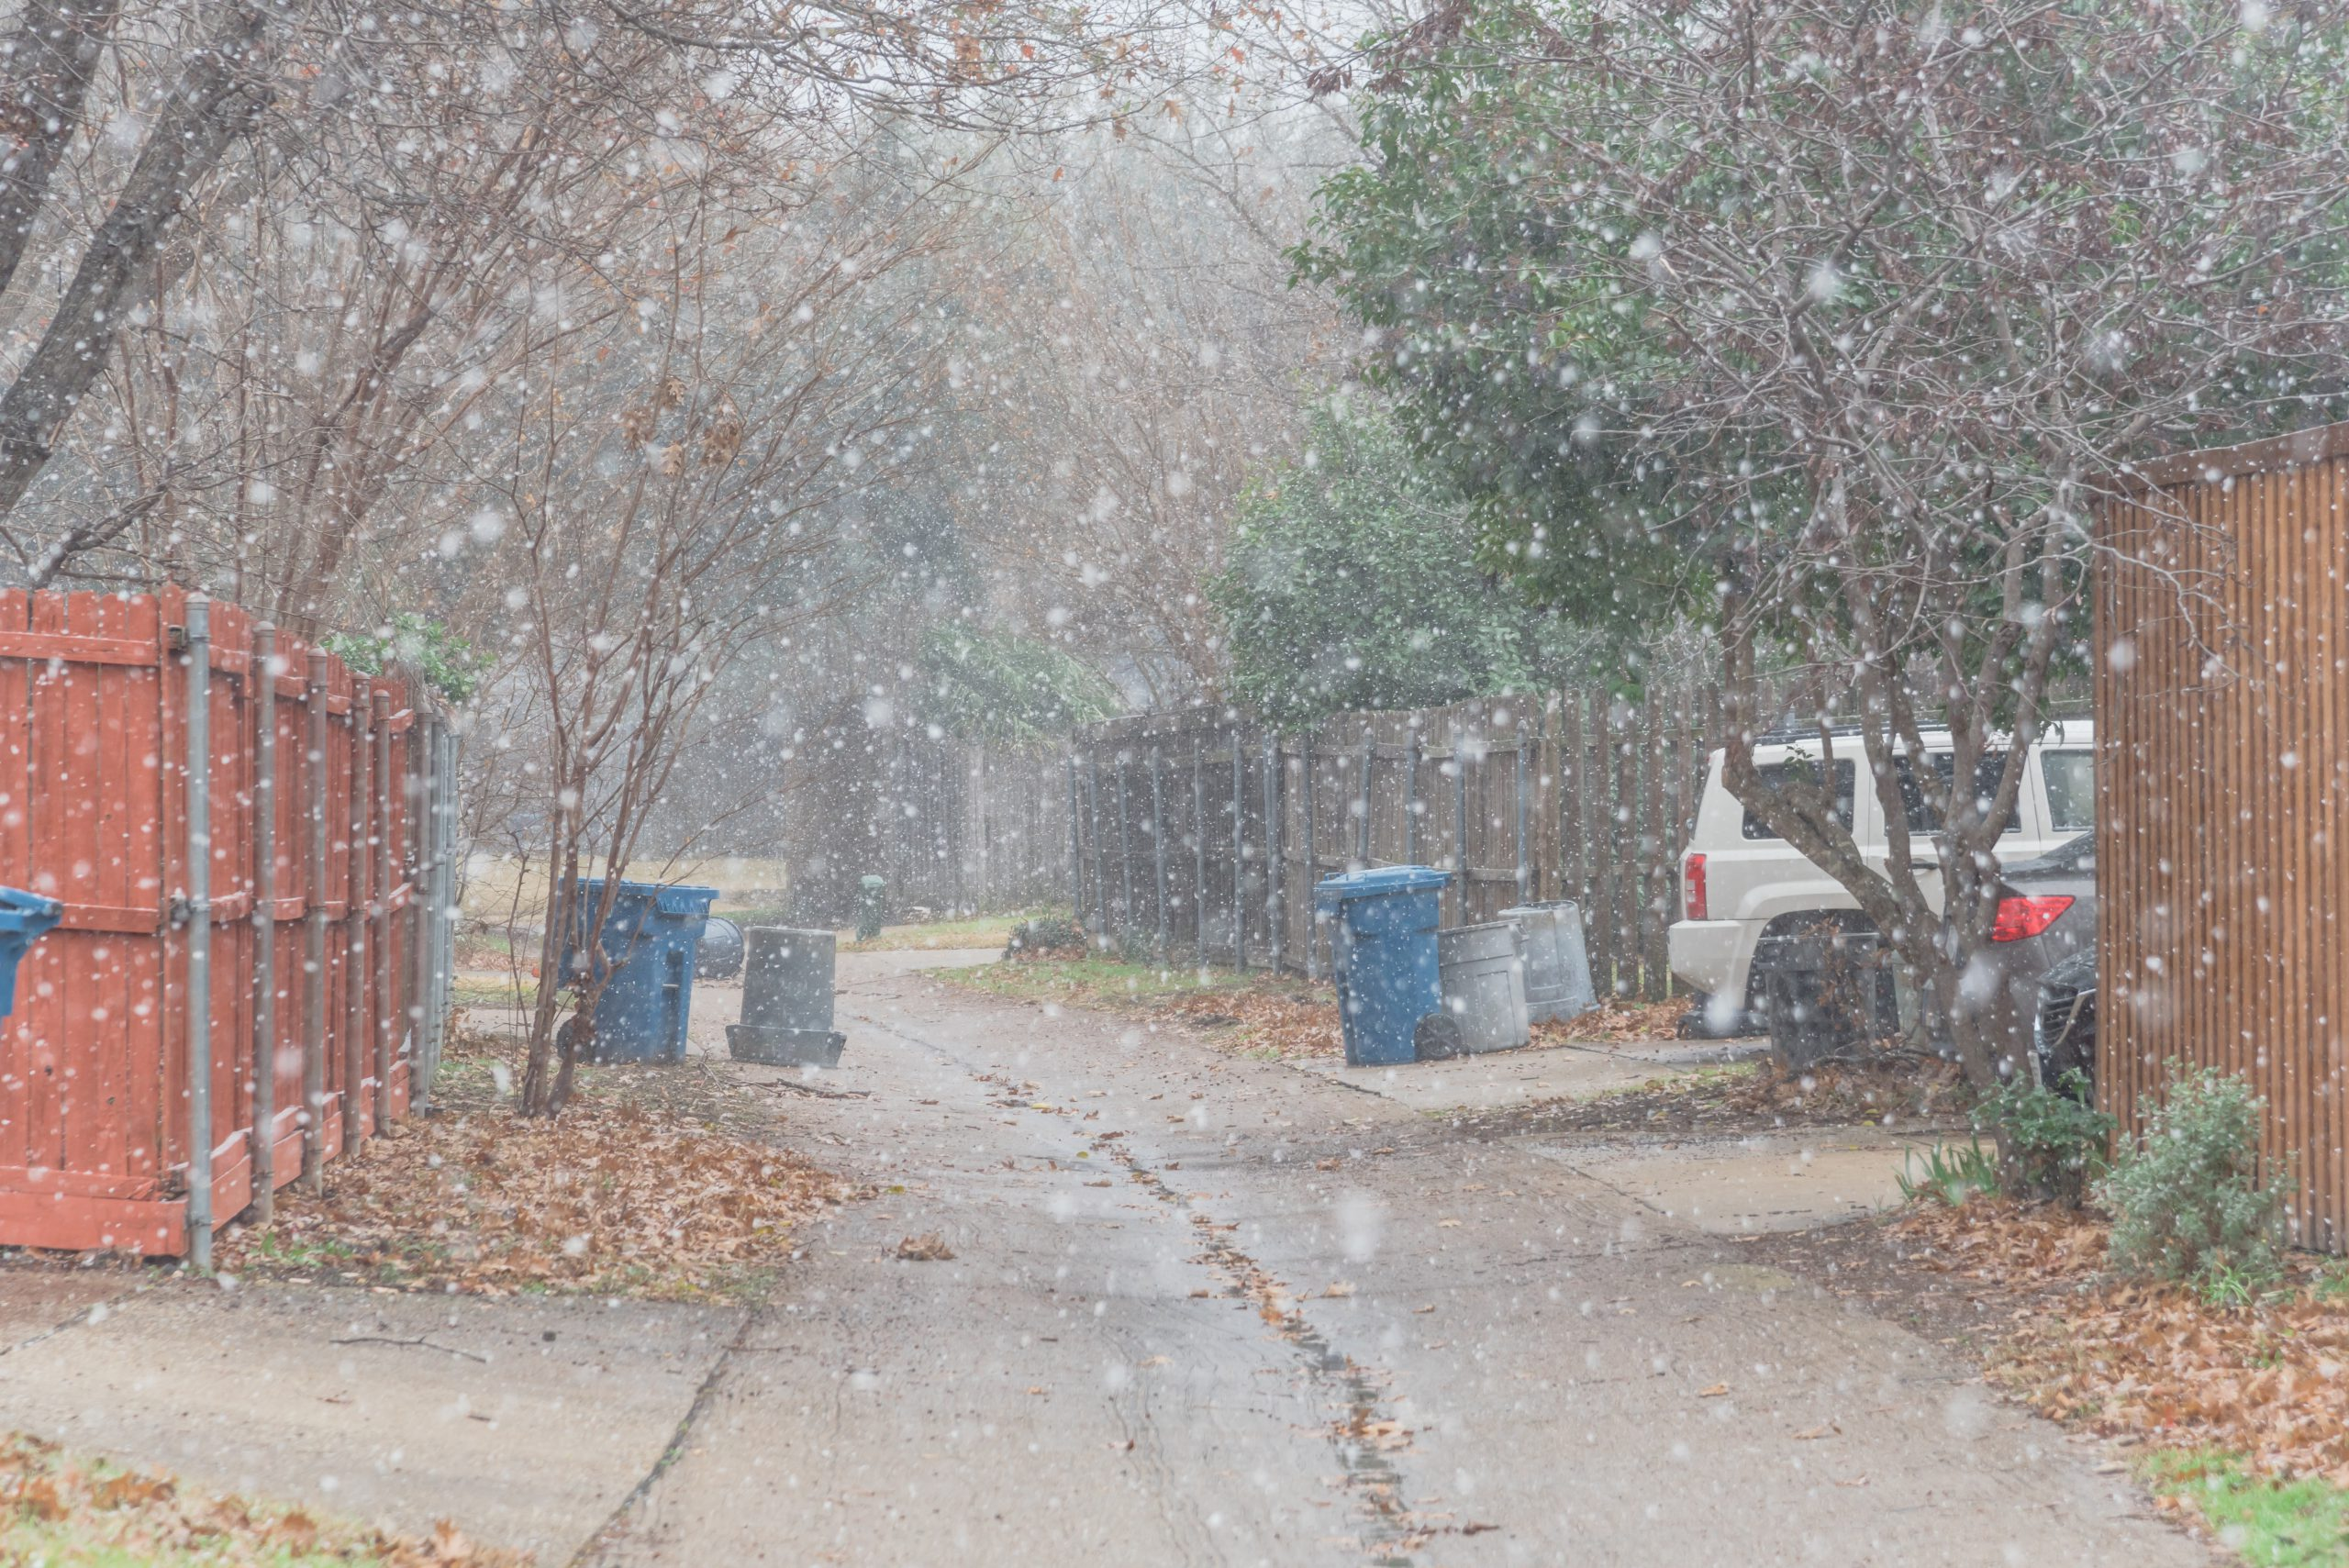 Snow falling in back alley of Texas community